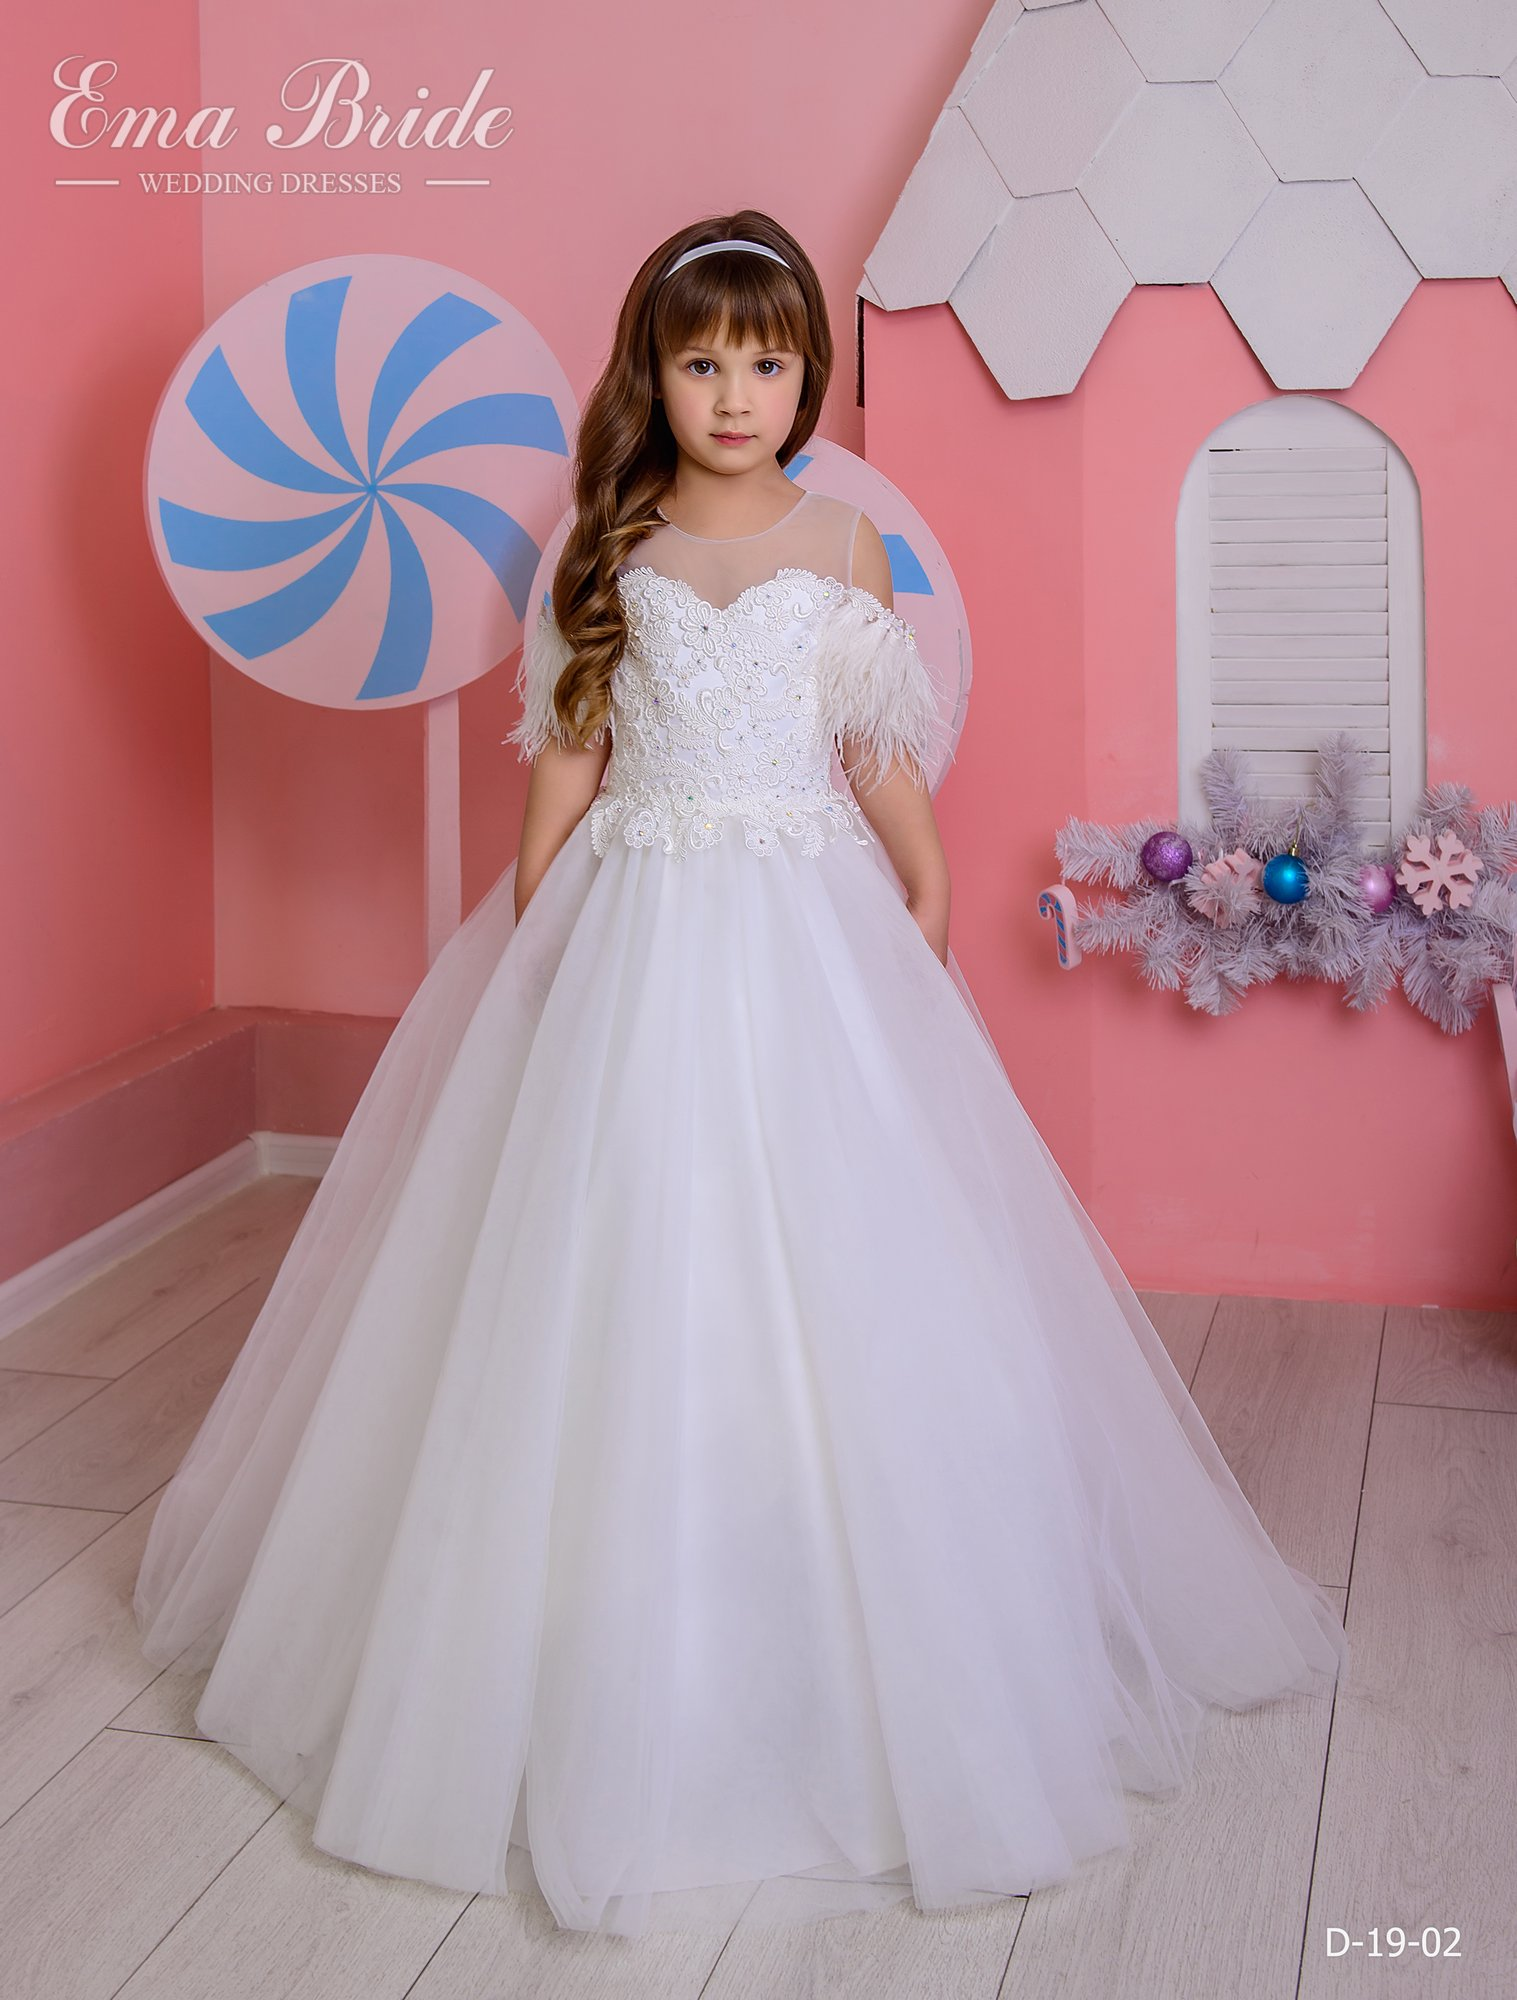 Children's dress by EmaBride D-19-02 2019